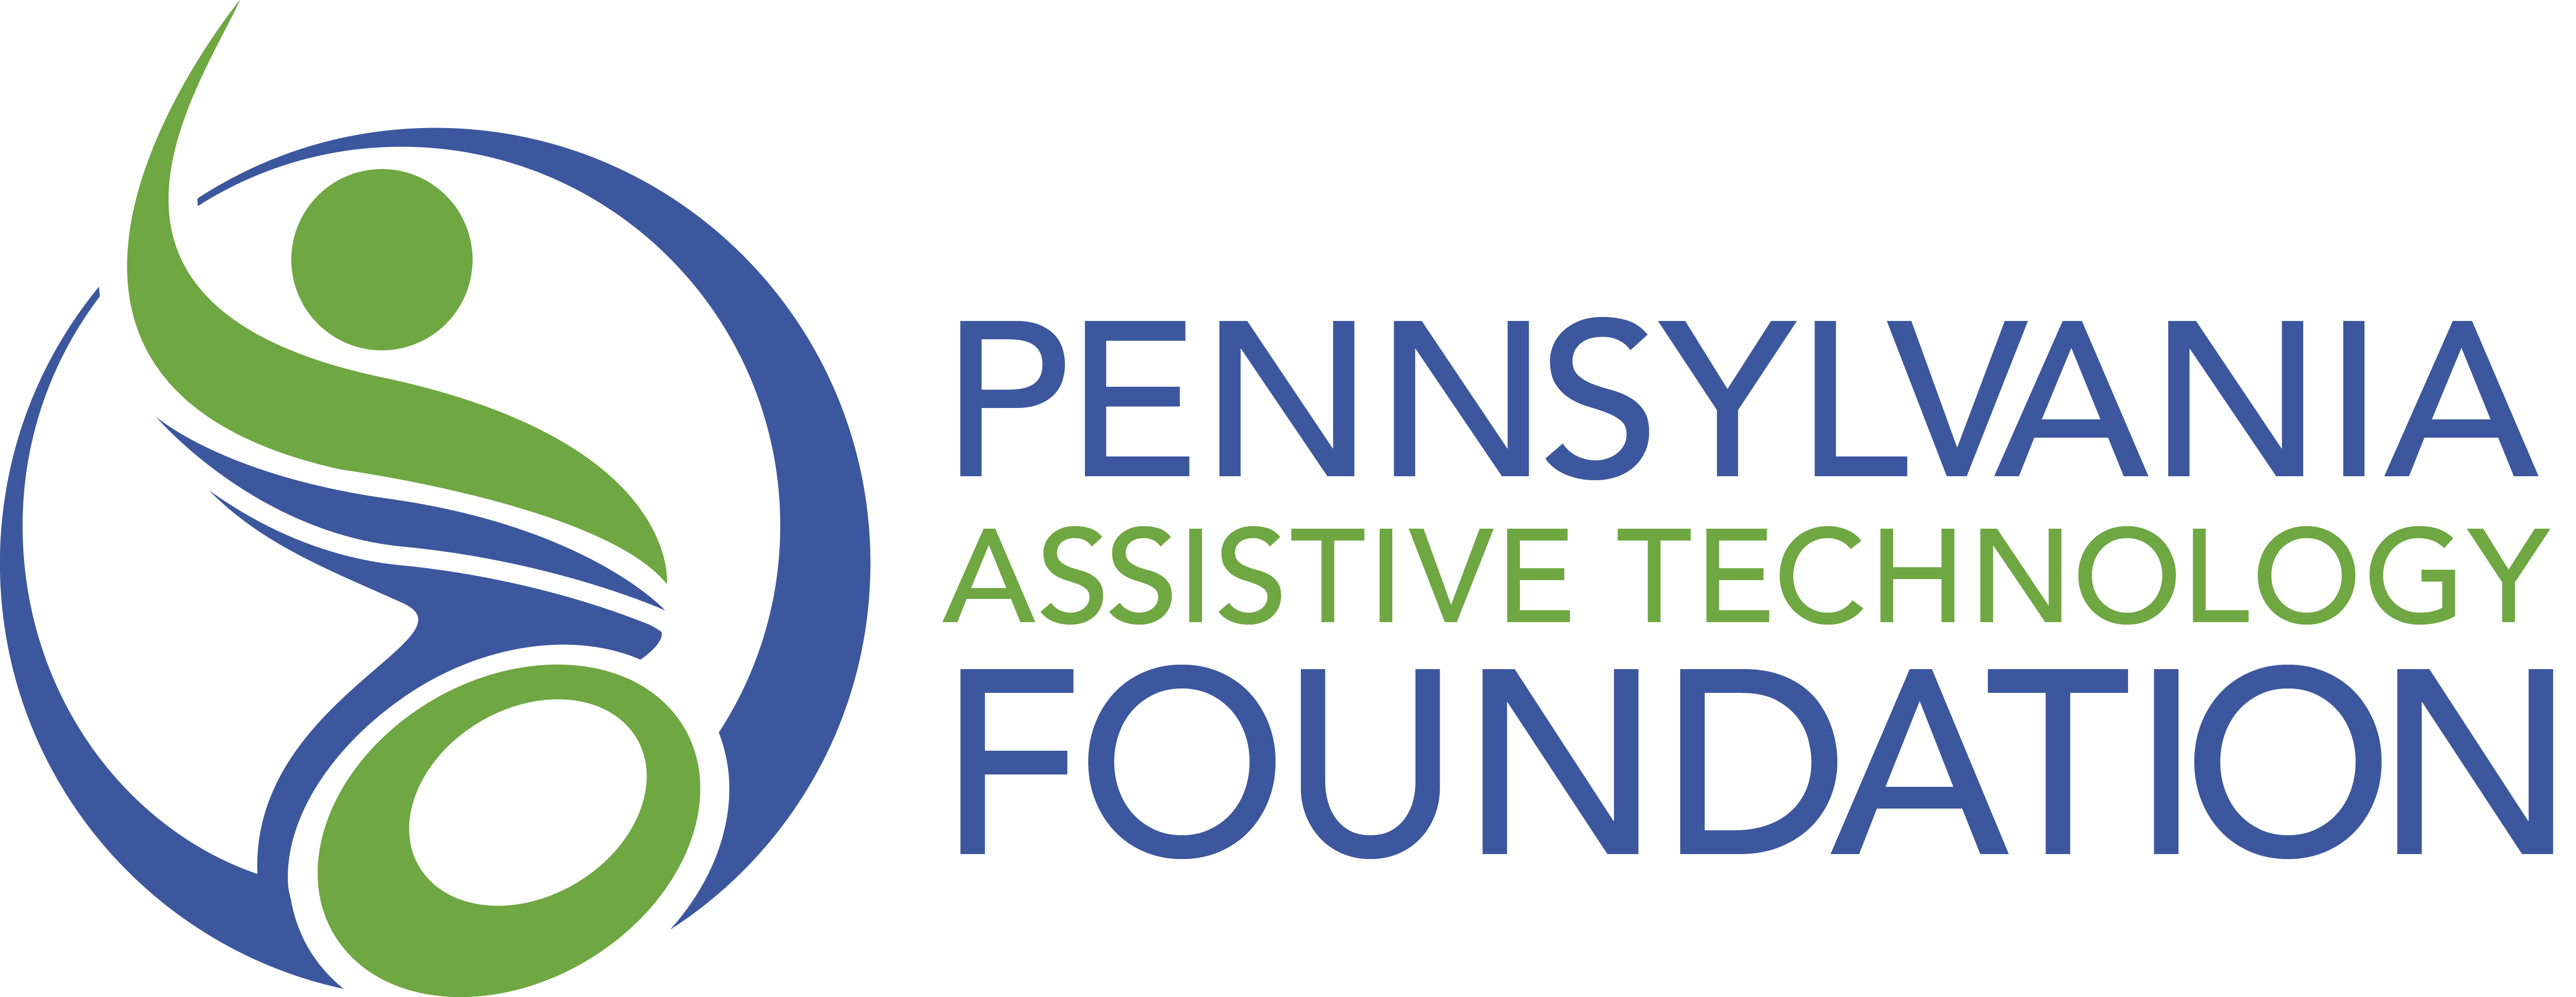 Pennsylvania Assistive Technology Foundation (PATF) Logo - Low or no interest loans